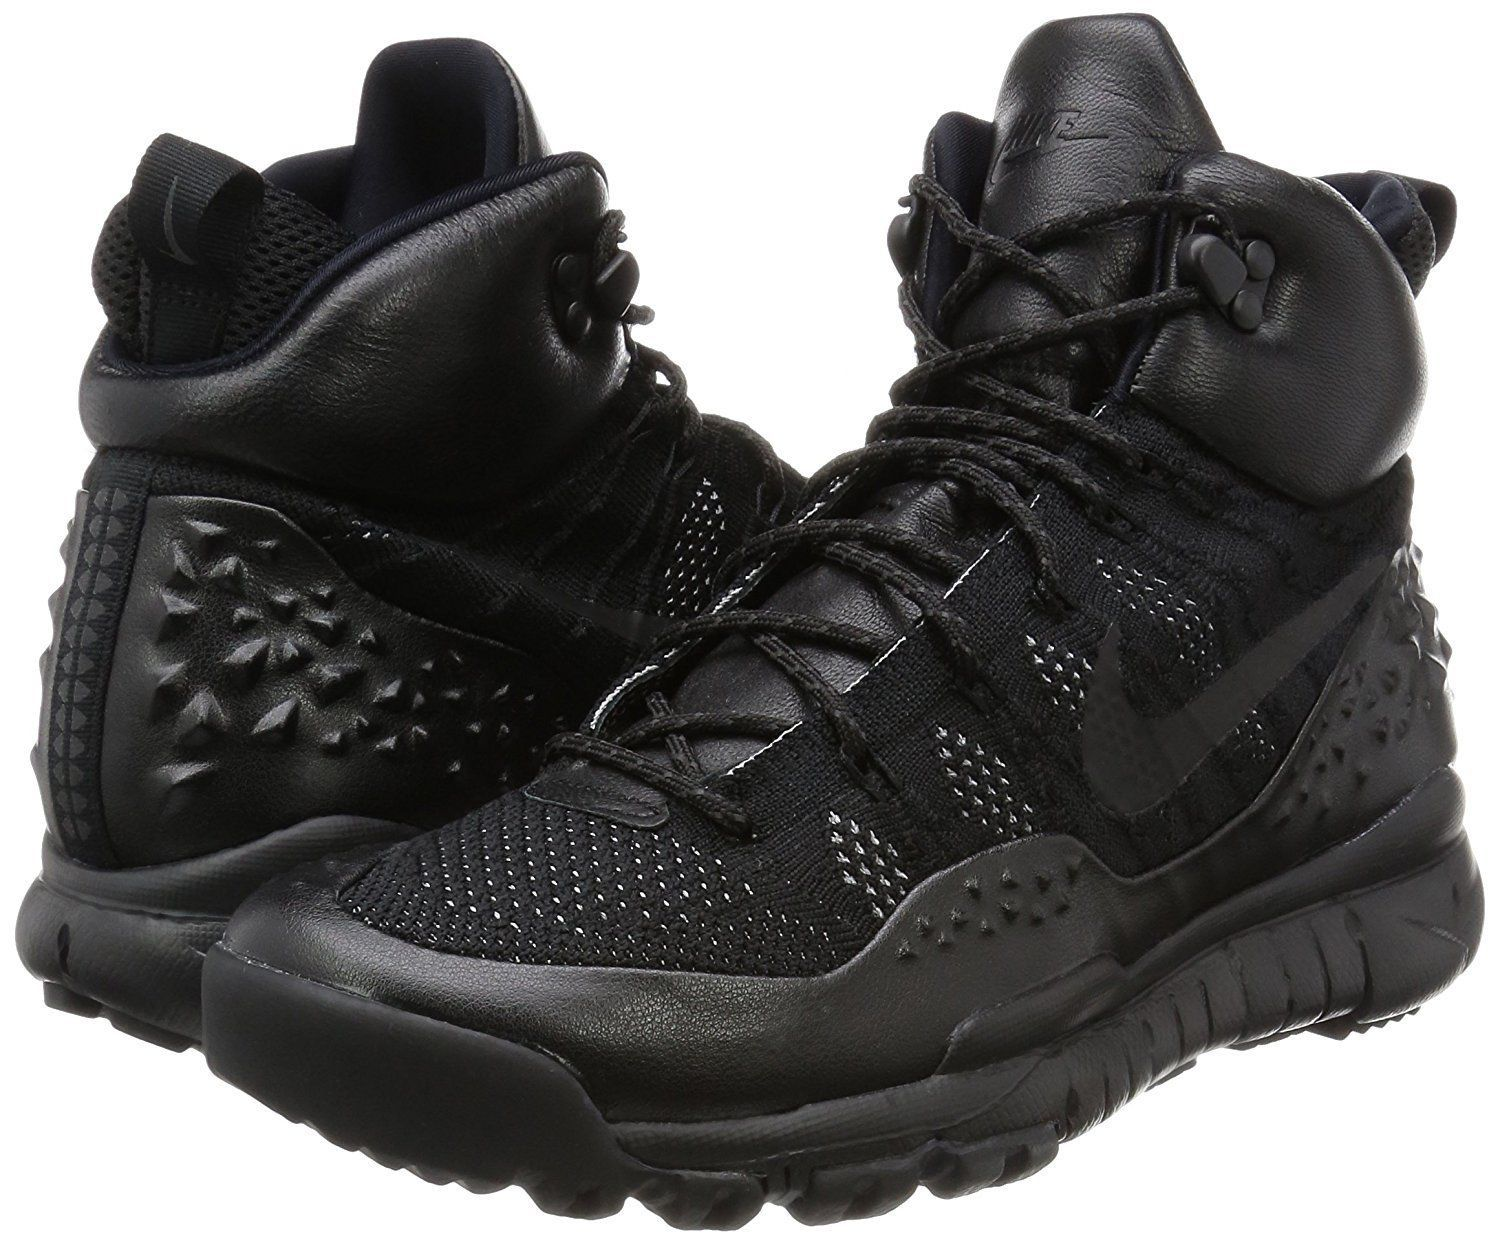 official supplier reliable quality competitive price Nike Lupinek Flyknit Black Anthracite Size and 50 similar items